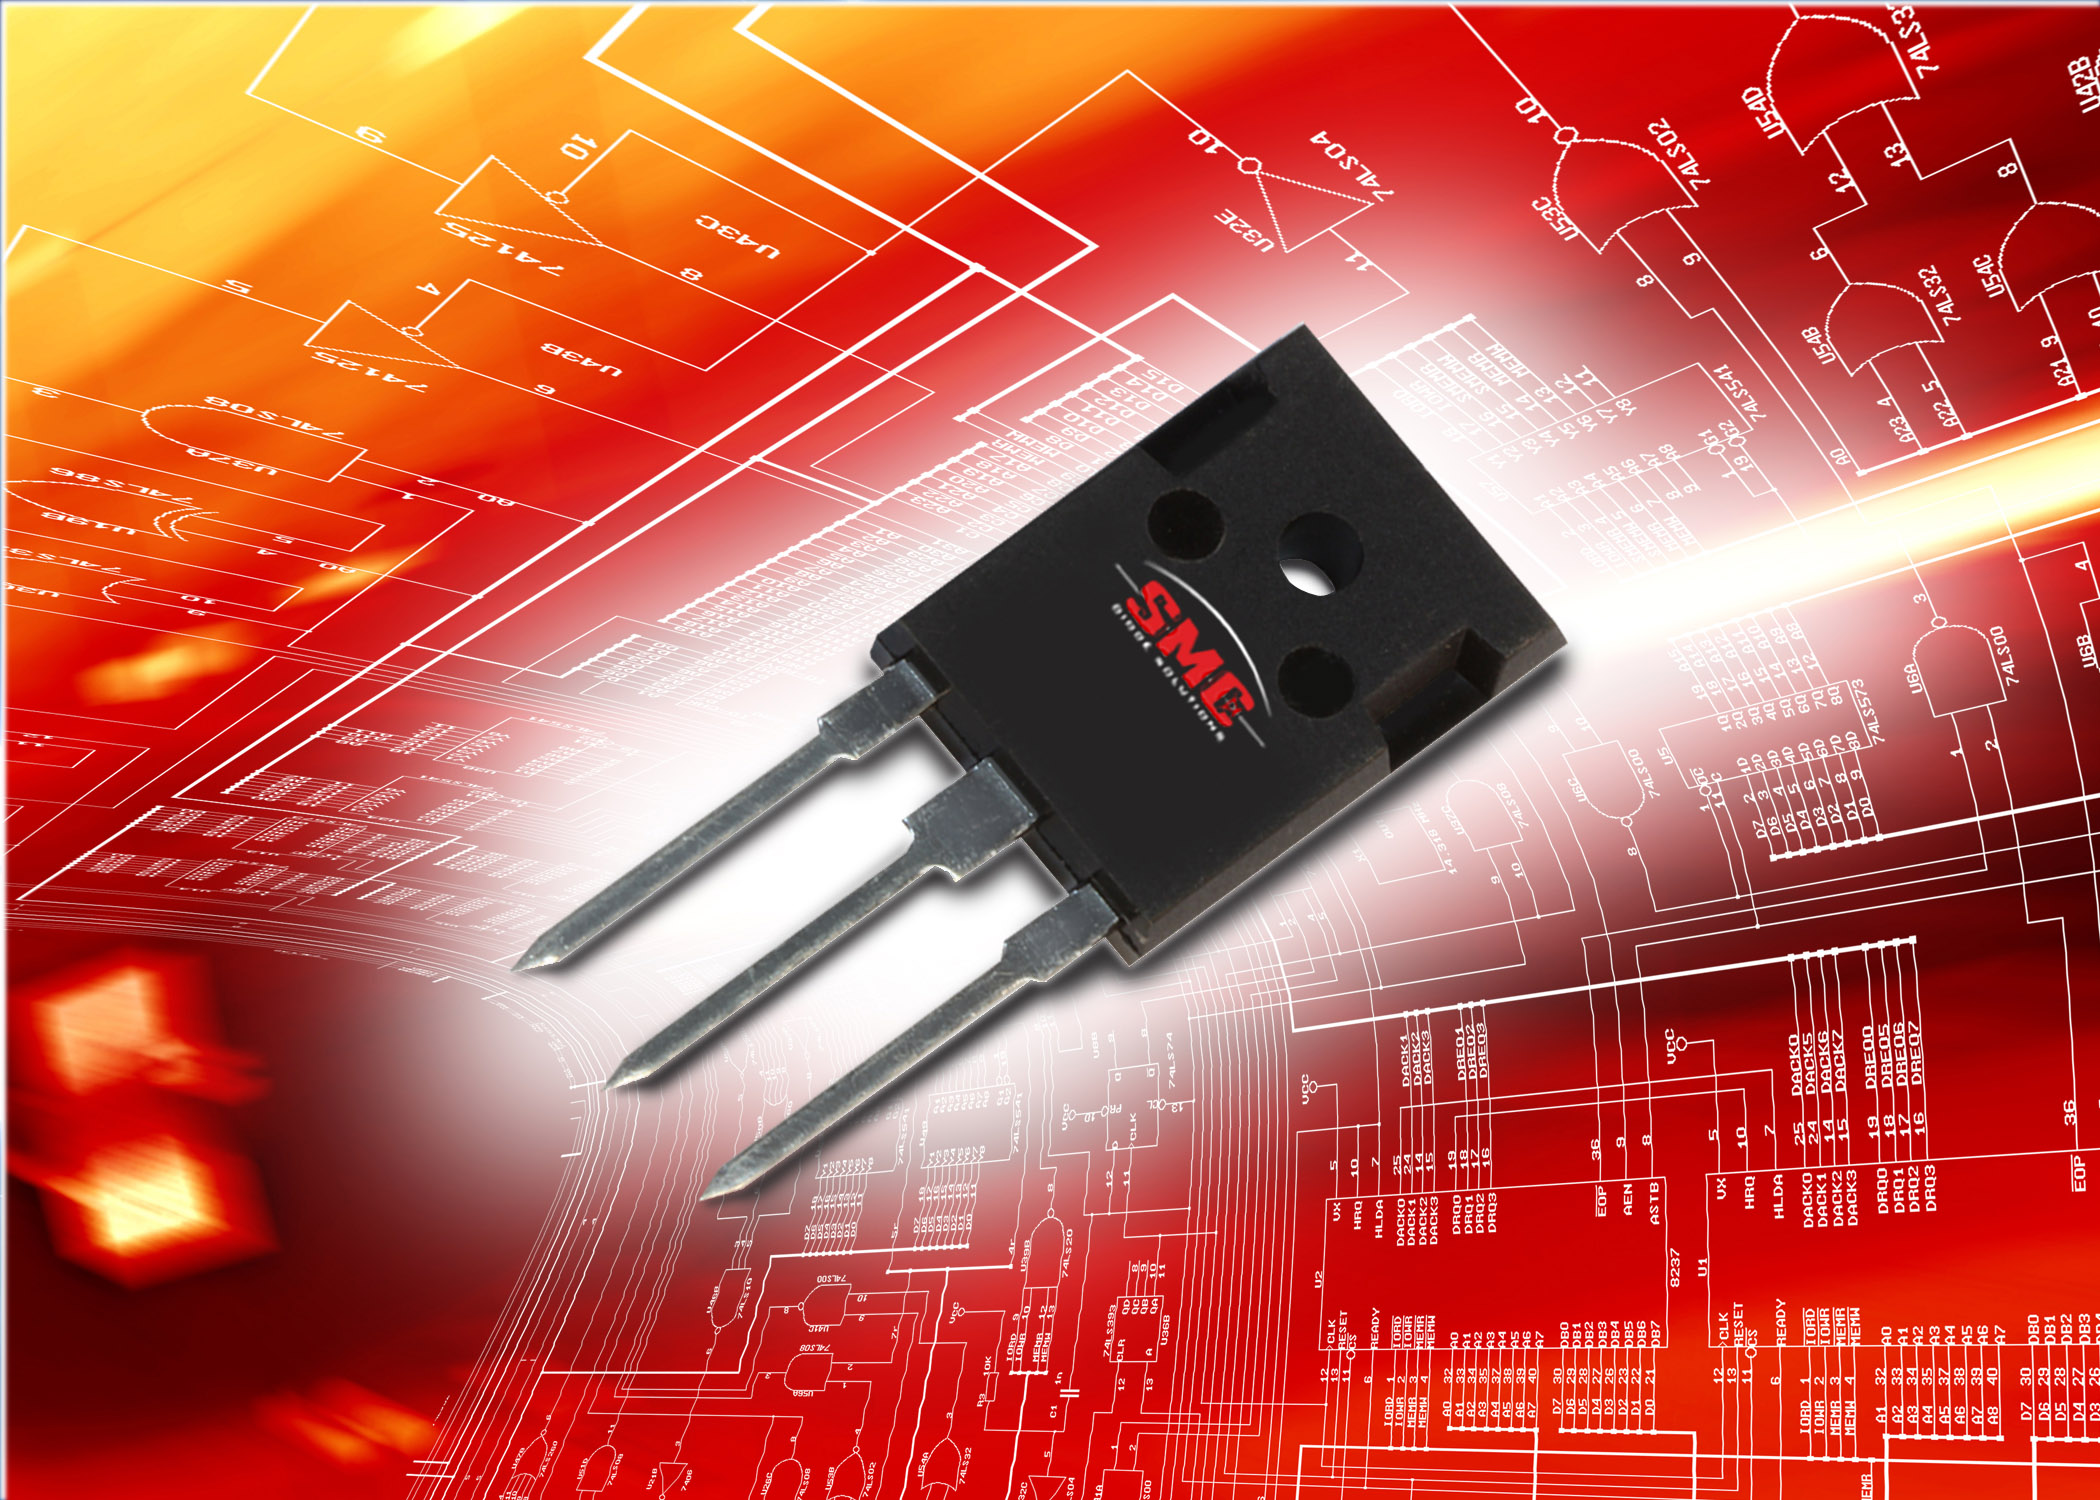 60 A, 600 V, Ultrafast Recovery Rectifiers Offered in TO-247AD Packages